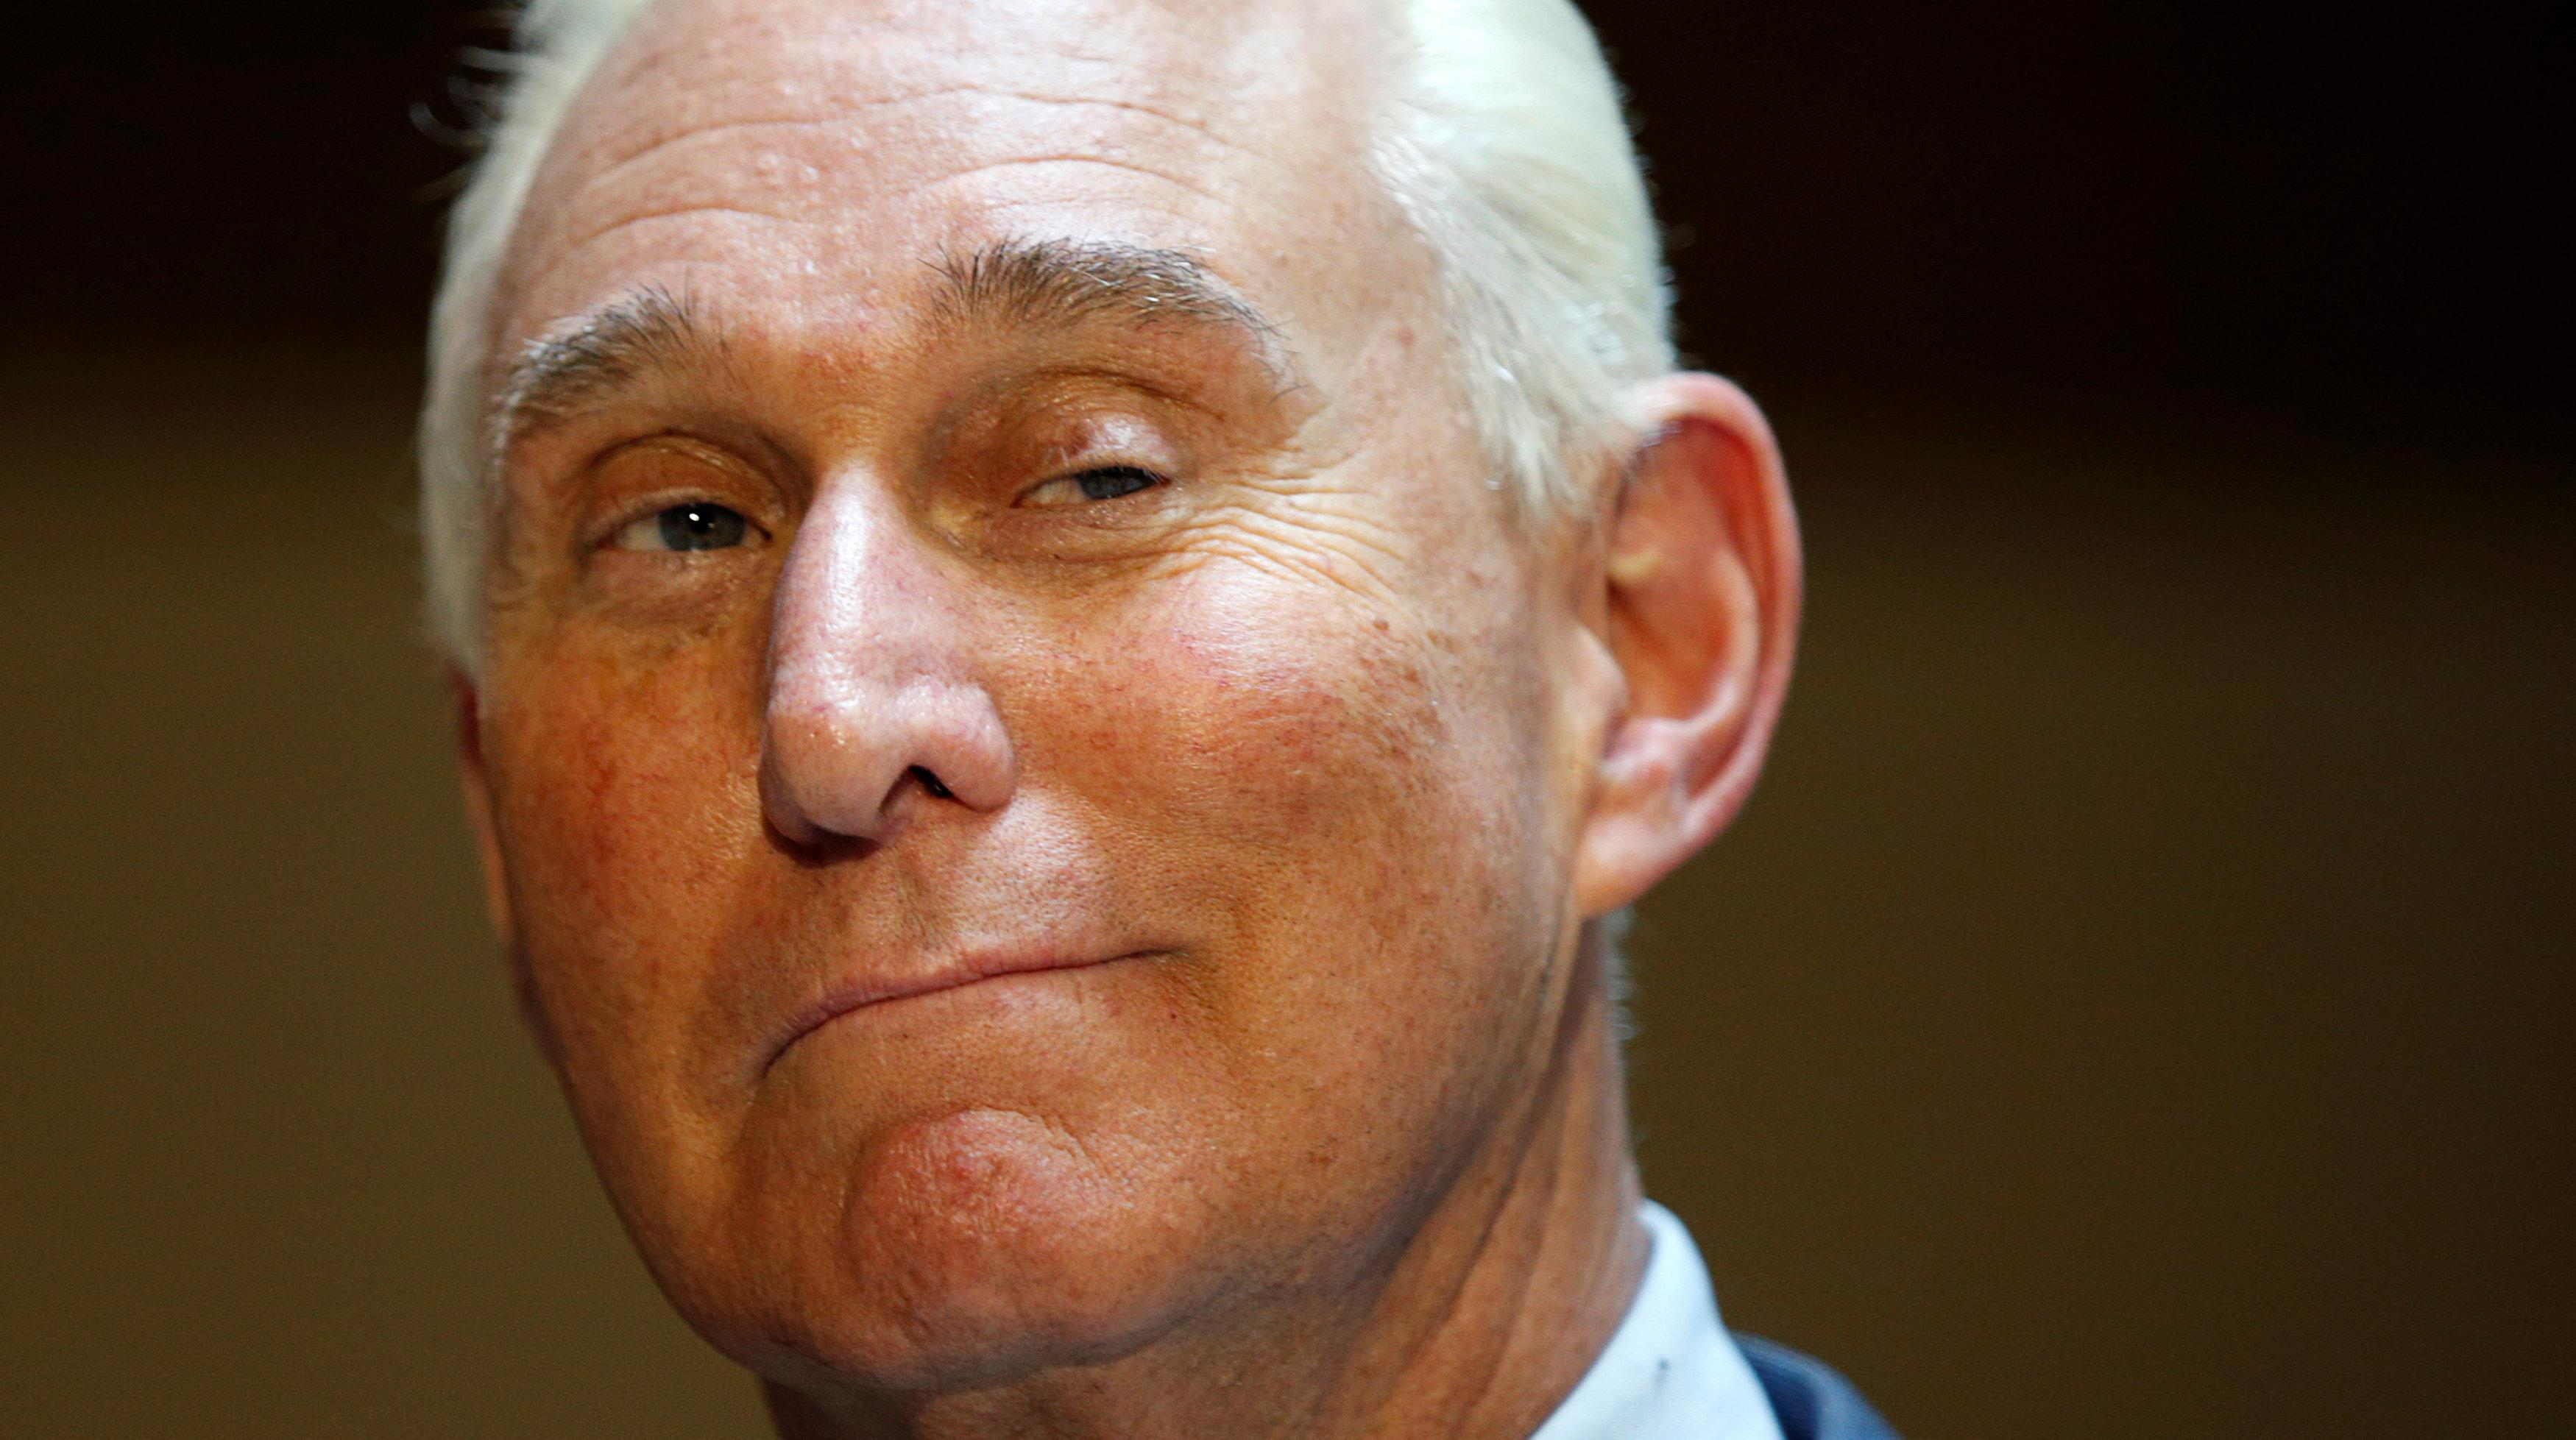 U.S. political consultant Roger Stone, a longtime ally of President Donald Trump, speaks to reporters after appearing before a closed House Intelligence Committee hearing investigating Russian interference in the 2016 U.S. presidential election at the U.S. Capitol in Washington, U.S., September 26, 2017.  Kevin Lamarque